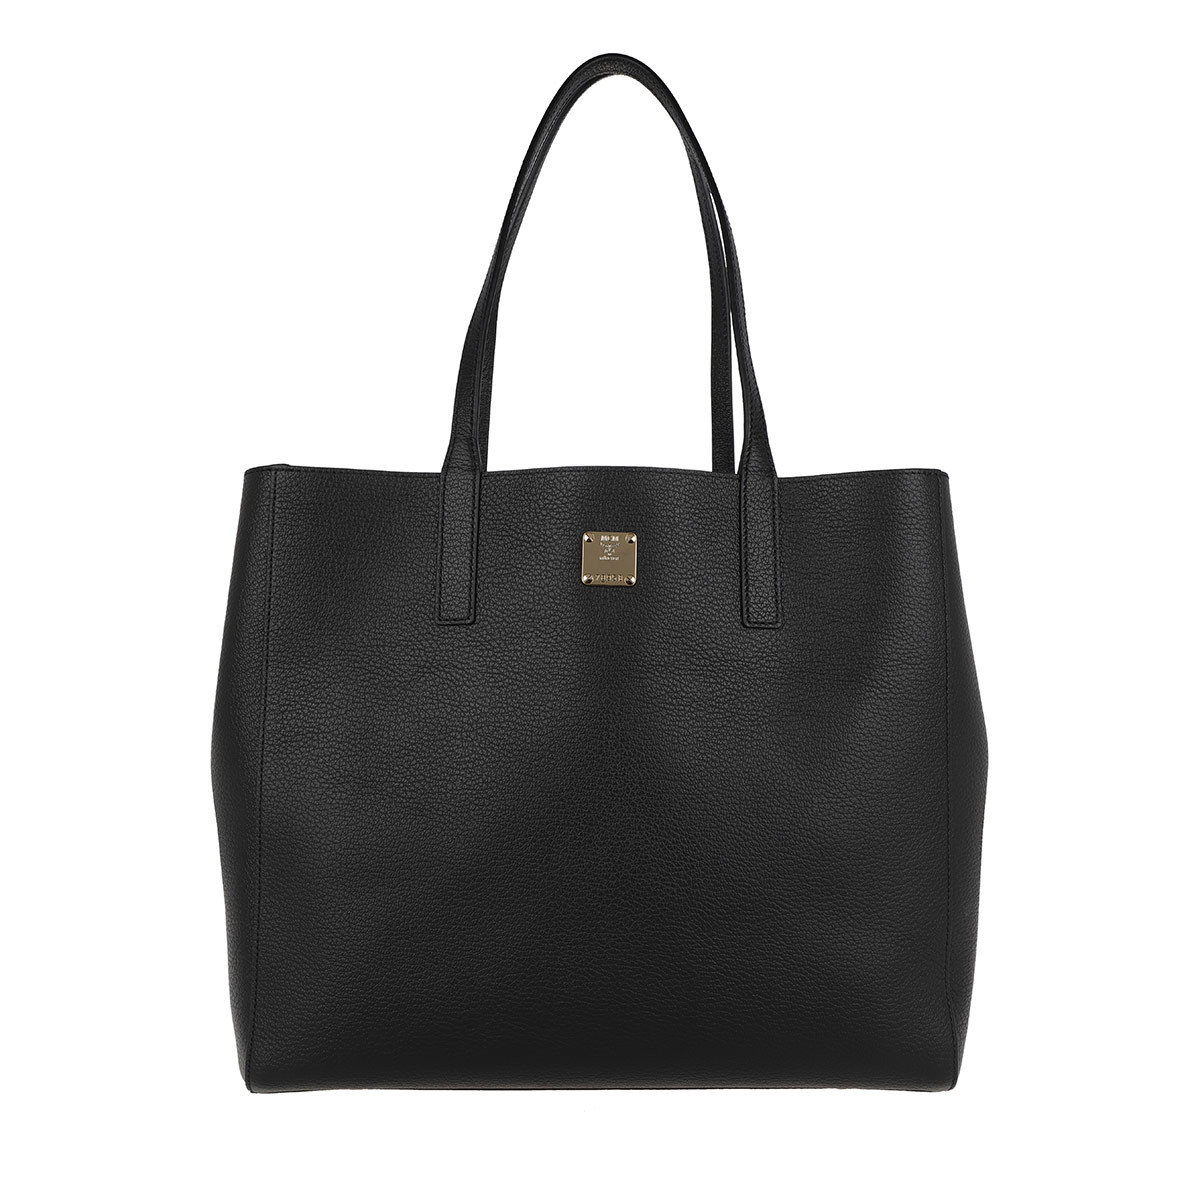 MCM Shopper - Koppelene Shopper Medium Black - in schwarz - für Damen